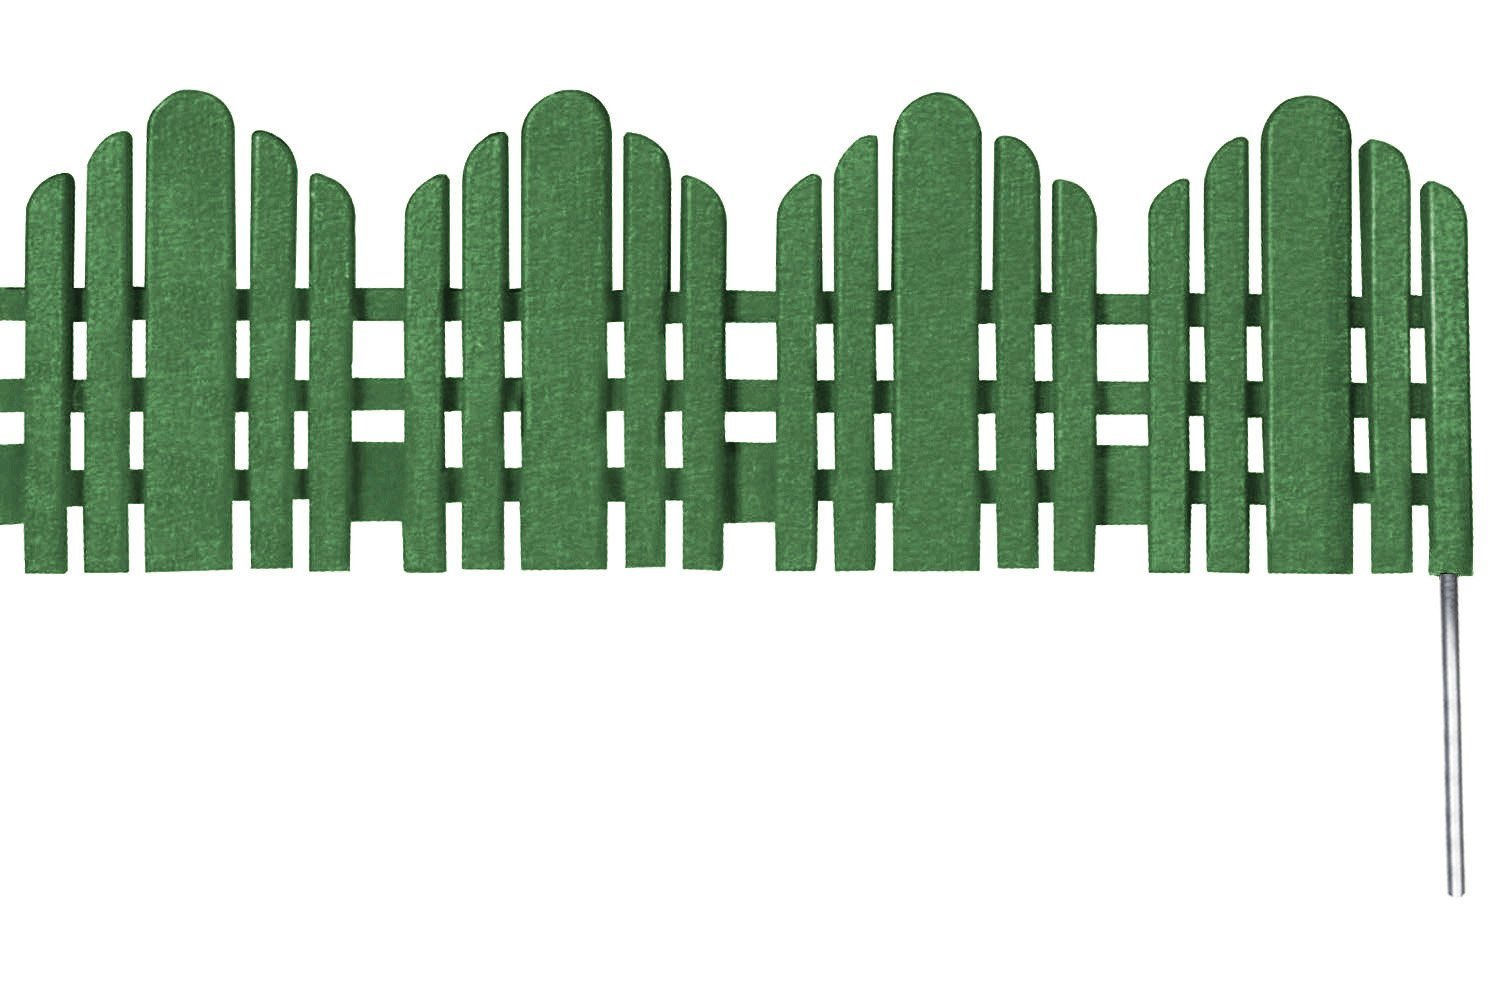 Decorative Landscape Edging Adirondack Border (No Dig Edging) Green 22 Inch x 6 Inch Sections, 18 Sections Pack (33 Feet)